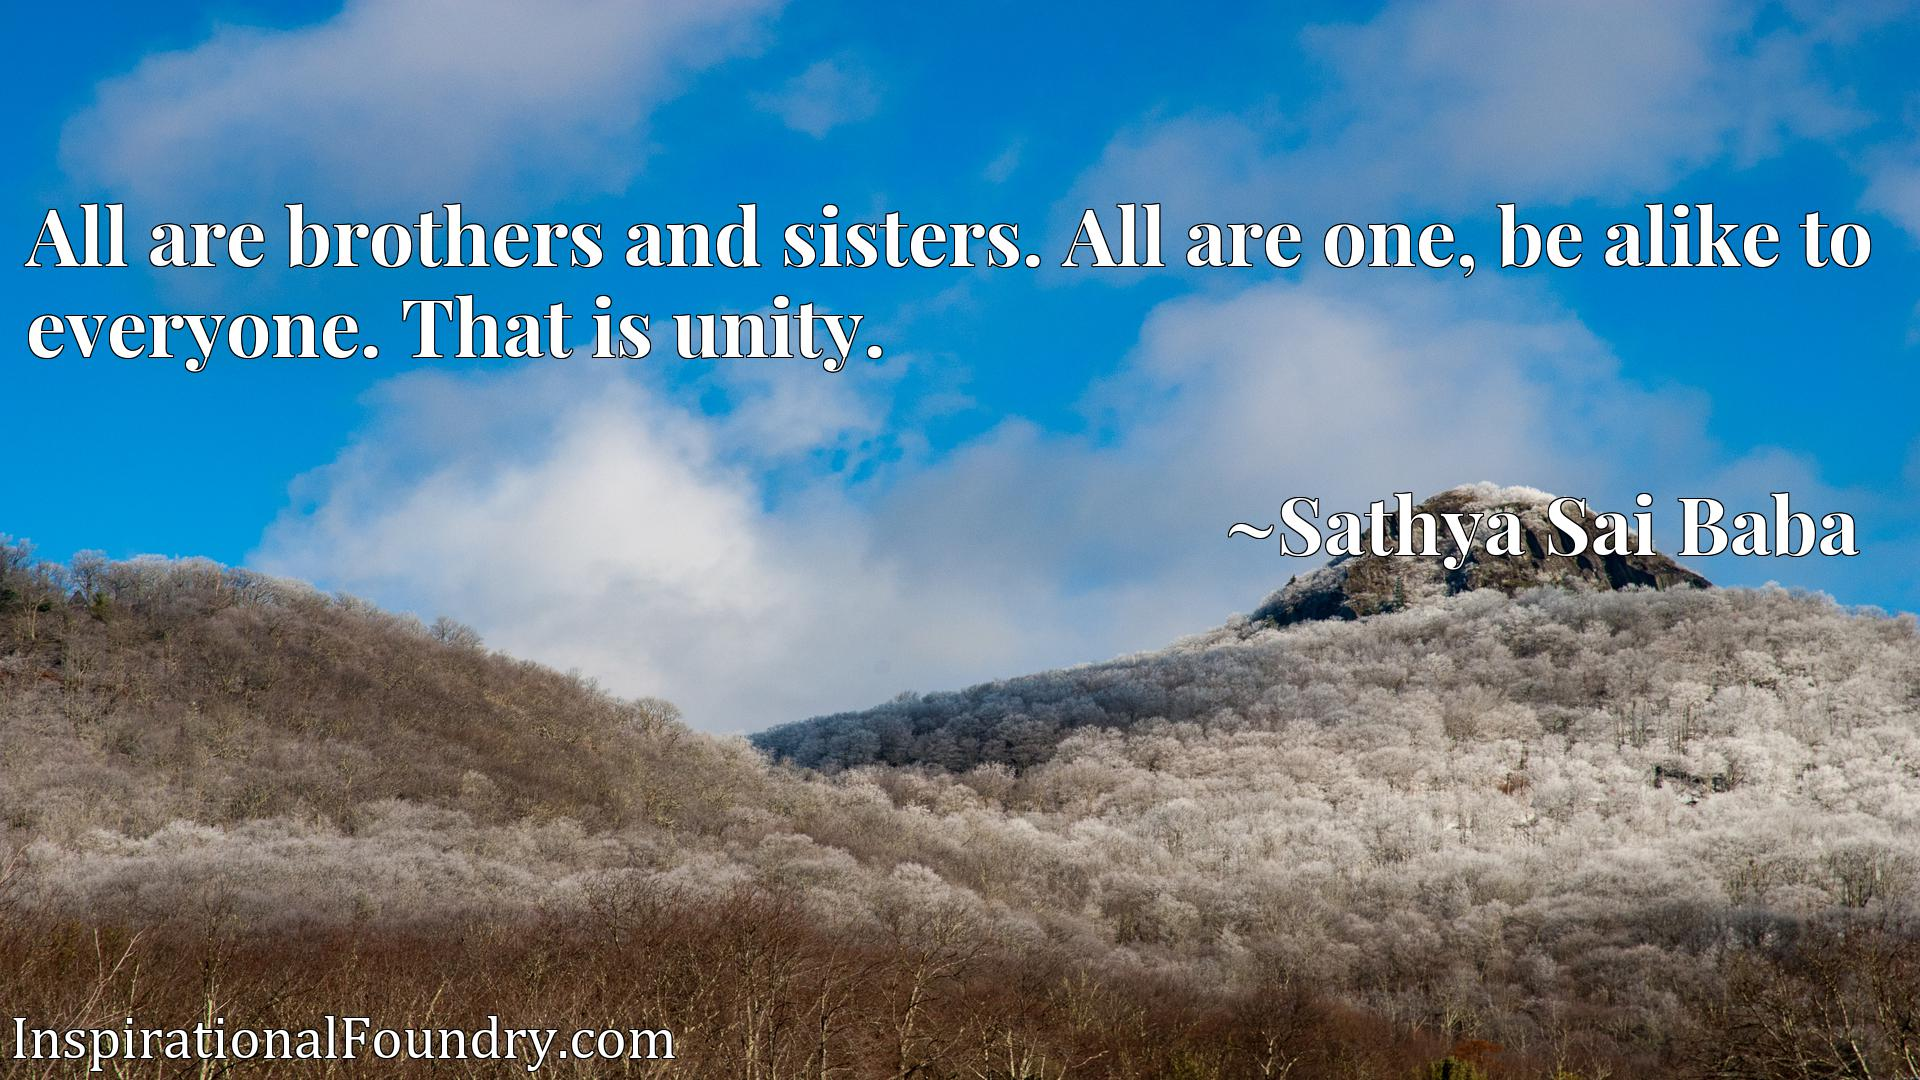 All are brothers and sisters. All are one, be alike to everyone. That is unity.